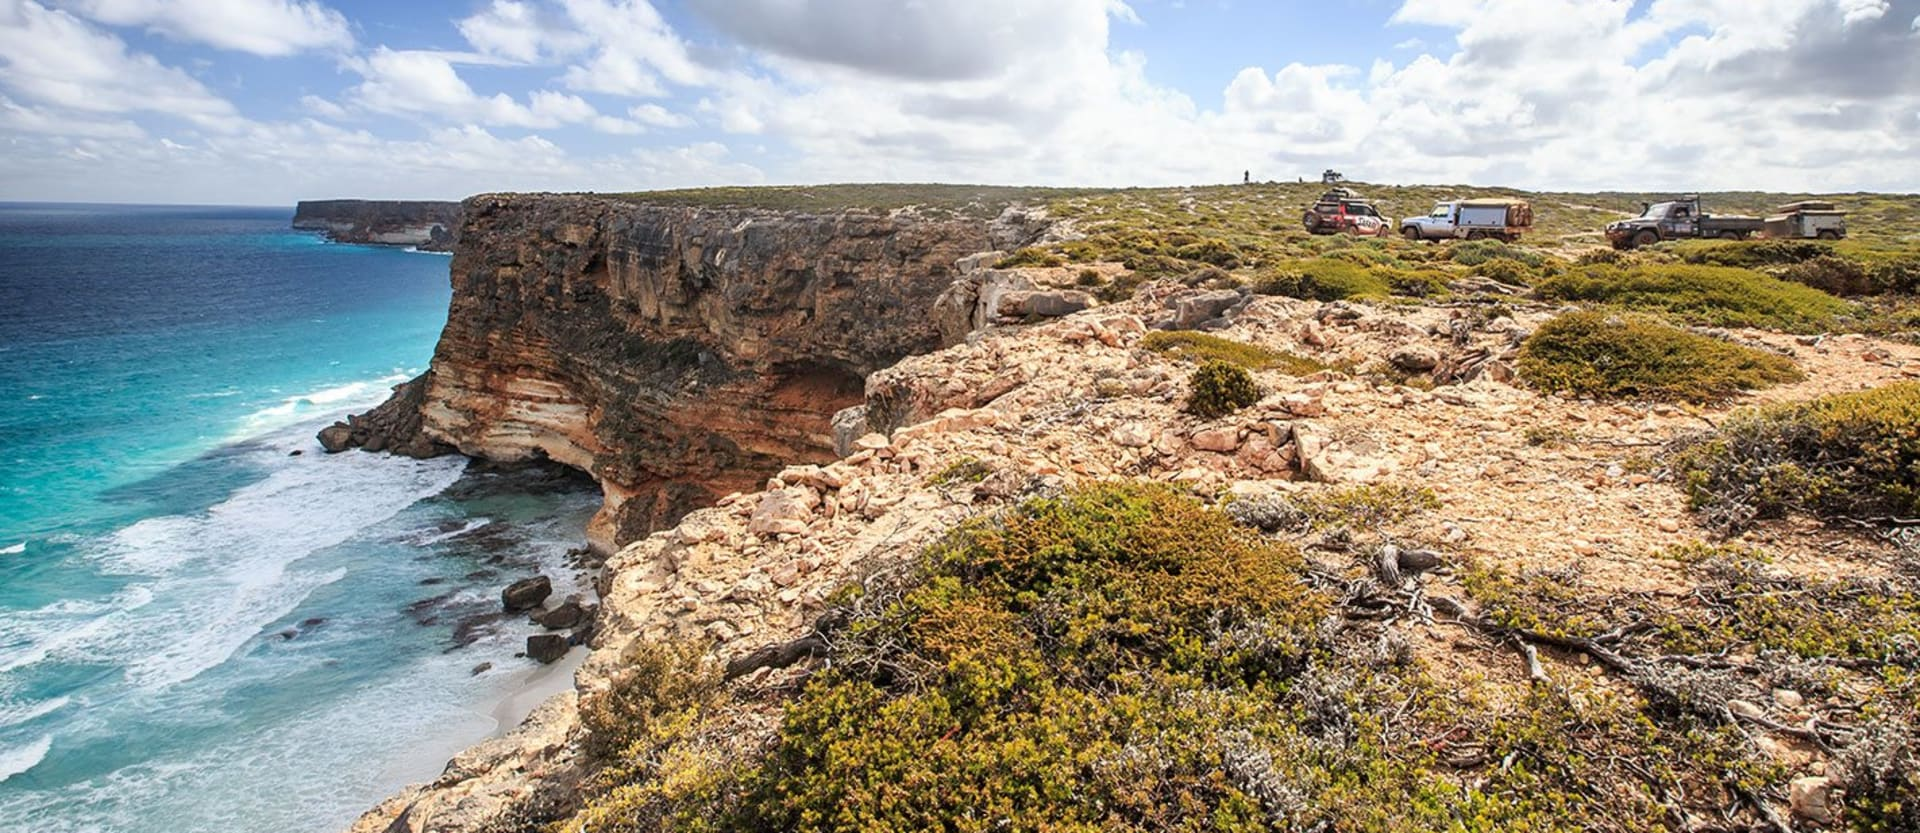 The South Australian Border cliffs of the Great Australian Bight